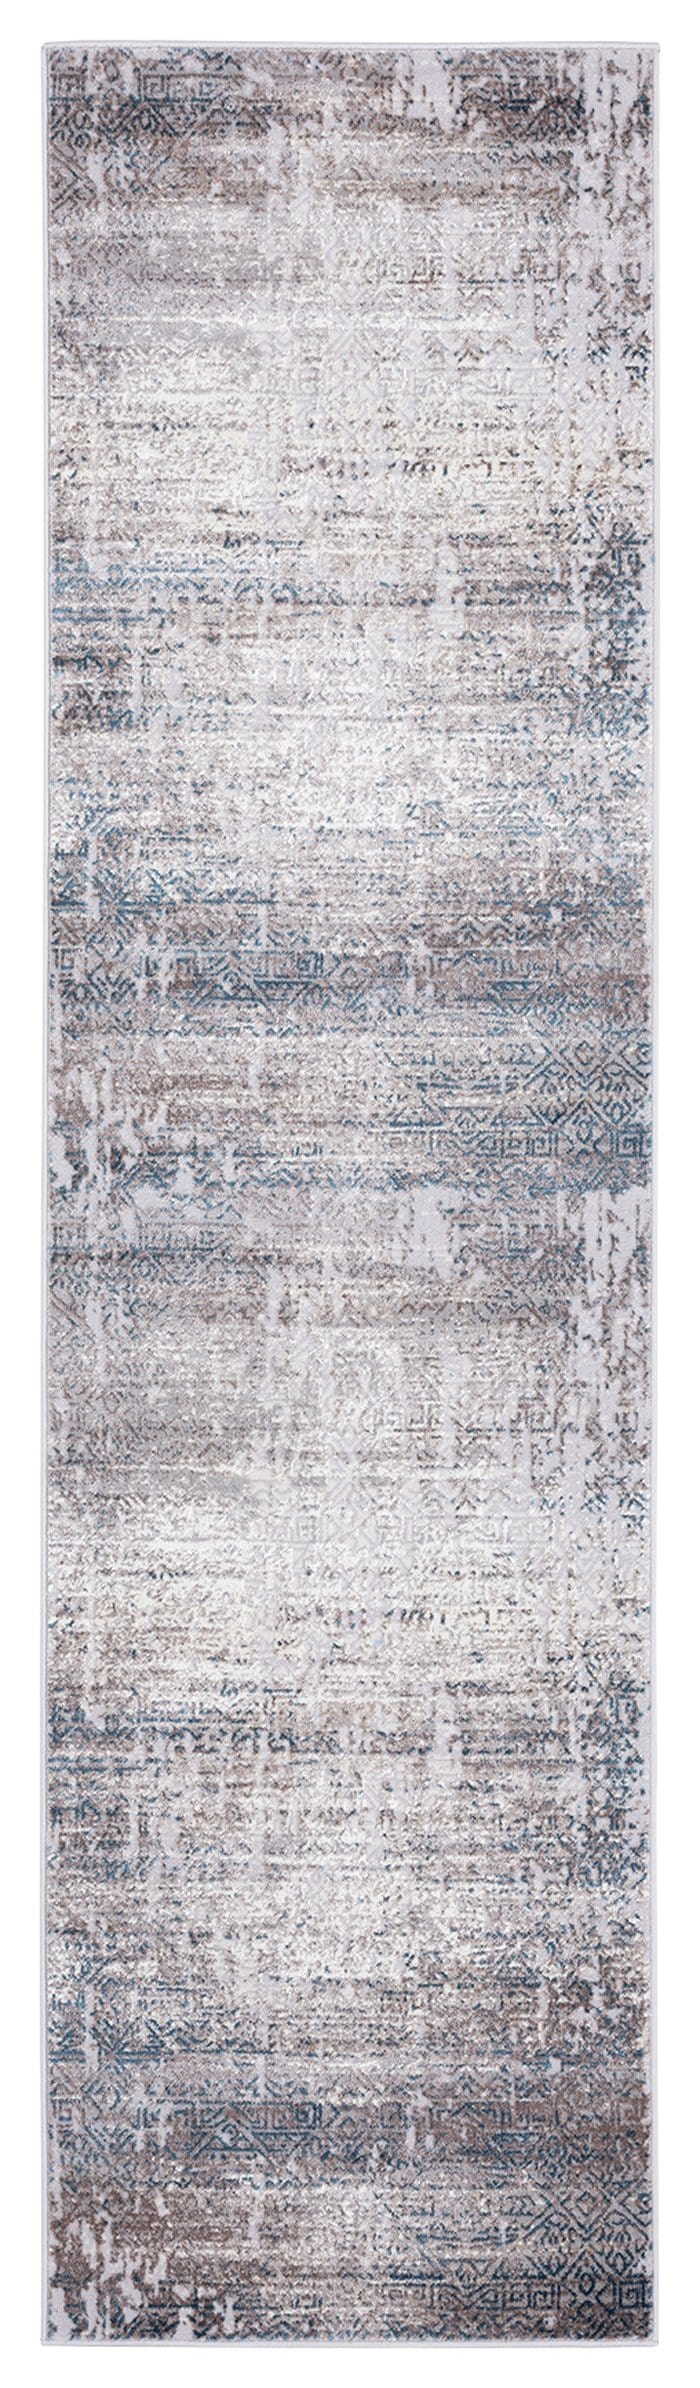 Tatara Grey Brown and Blue Distressed Tribal Runner Rug